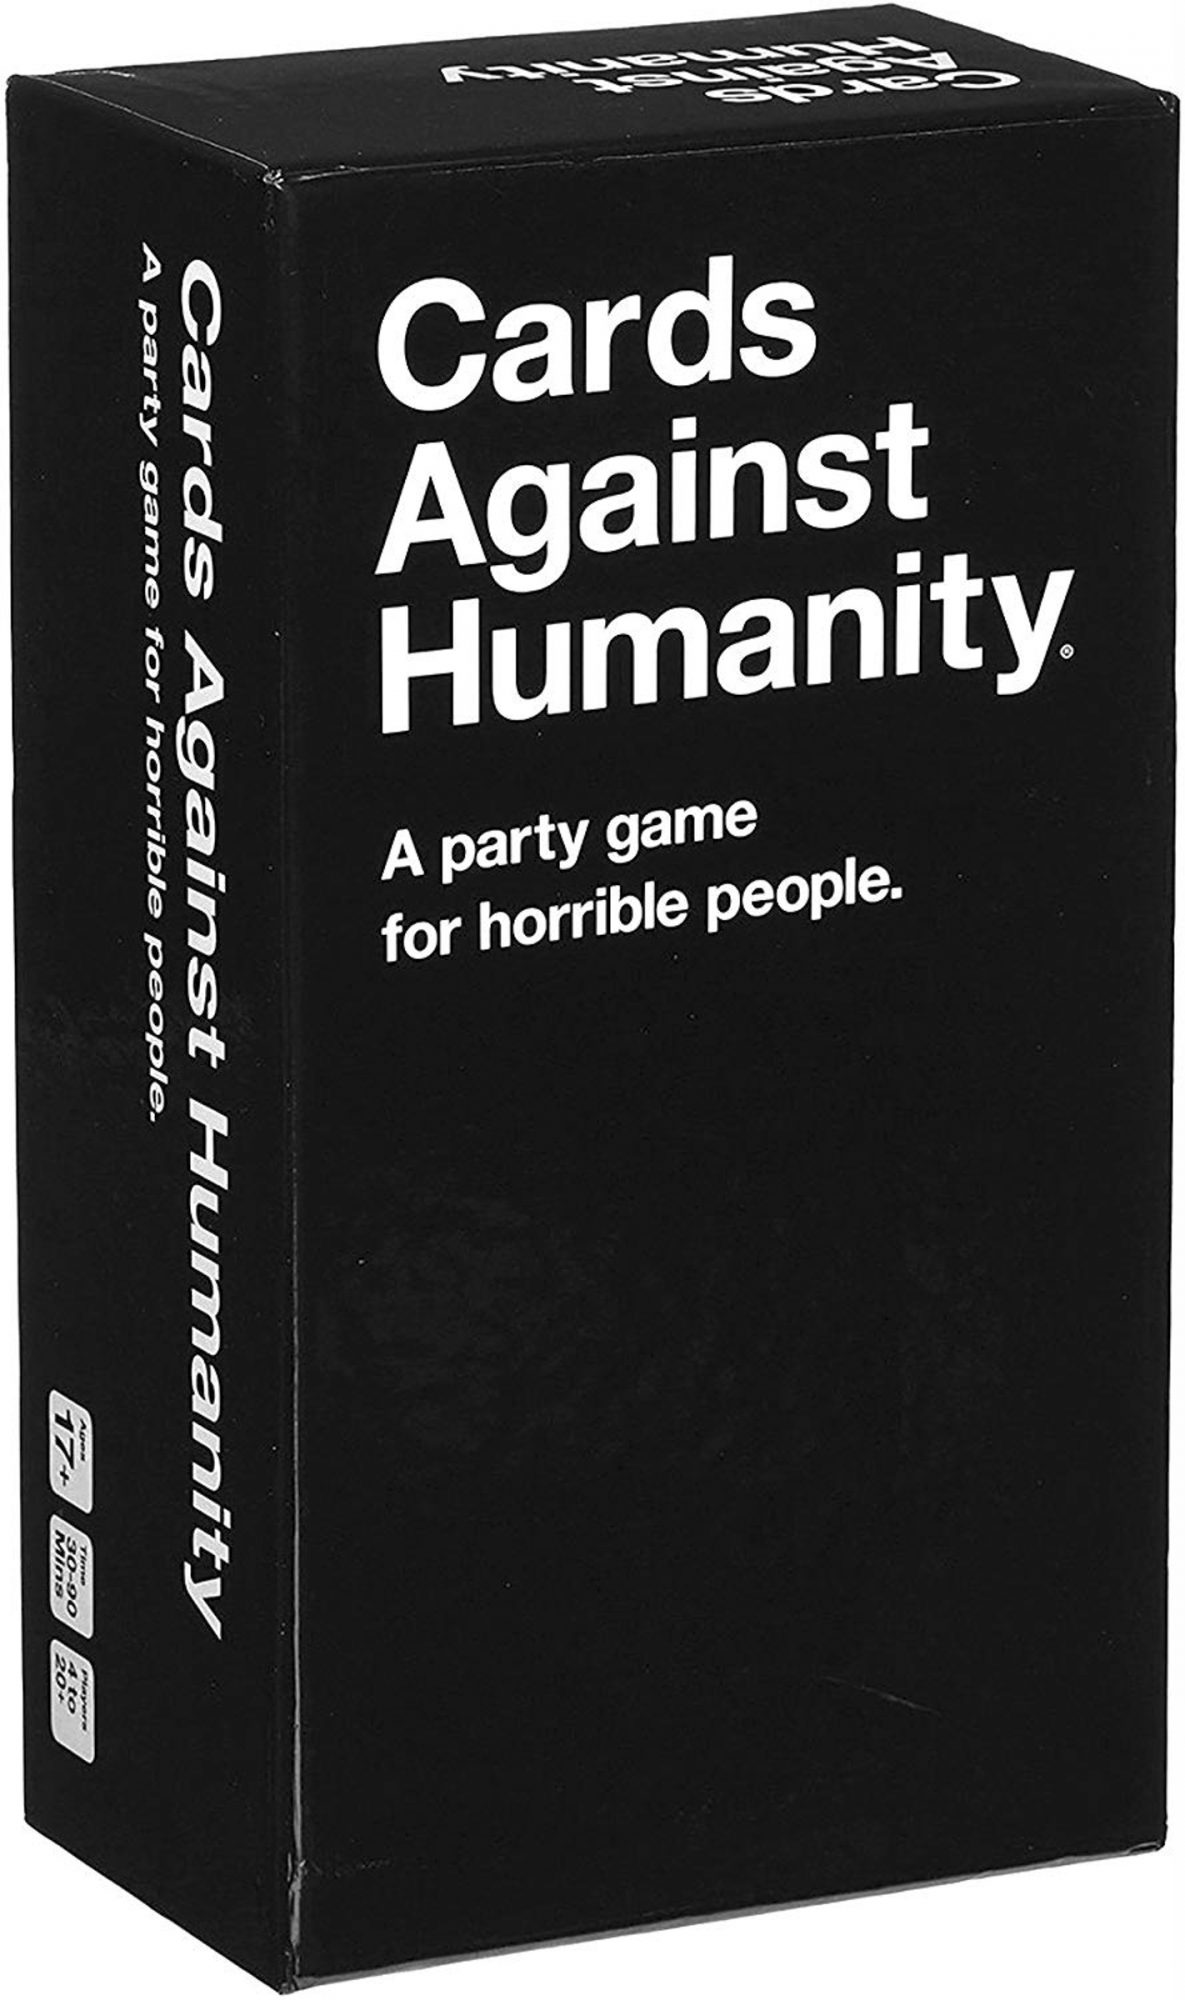 cards-against-humanity-04.jpg